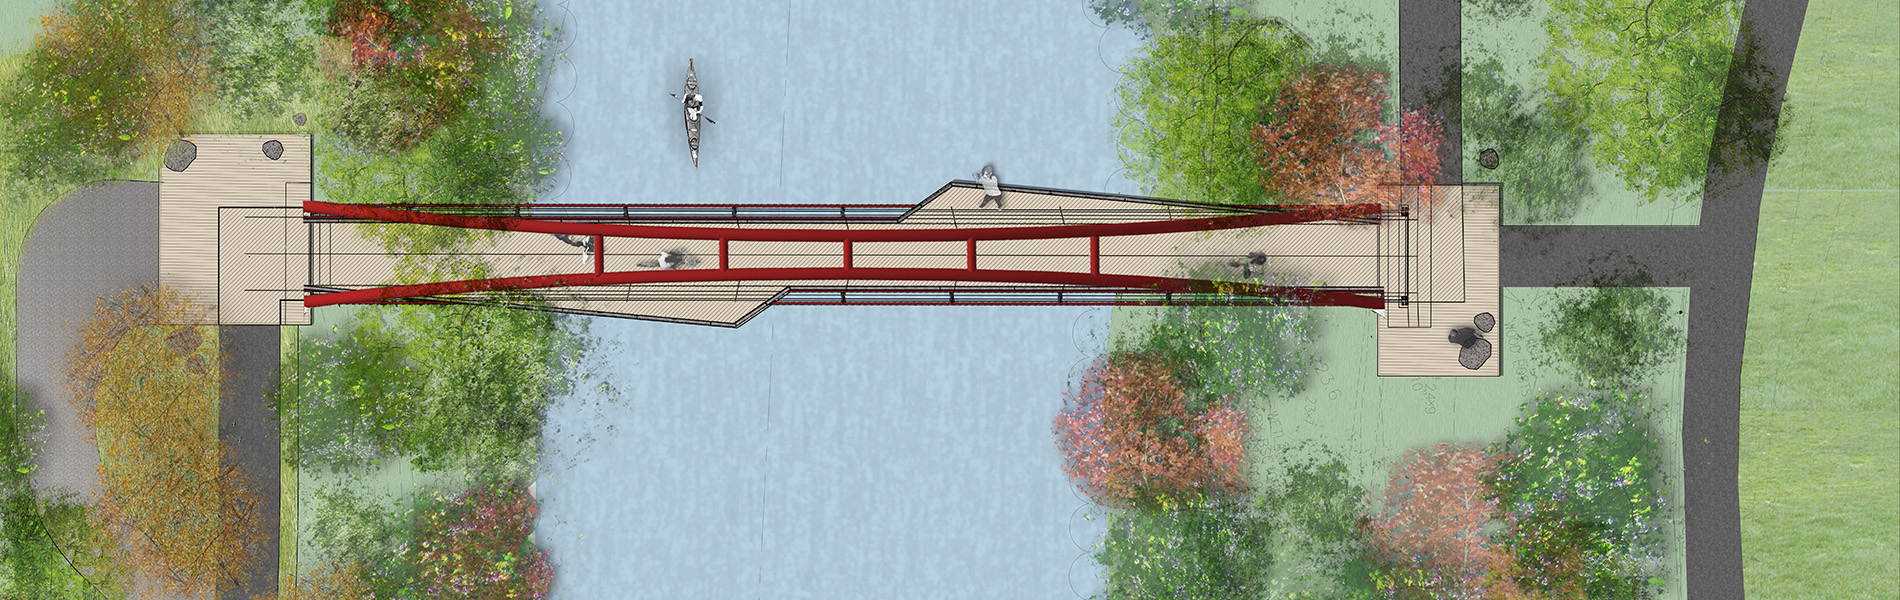 PLAN_River-Crossing-Bridge1